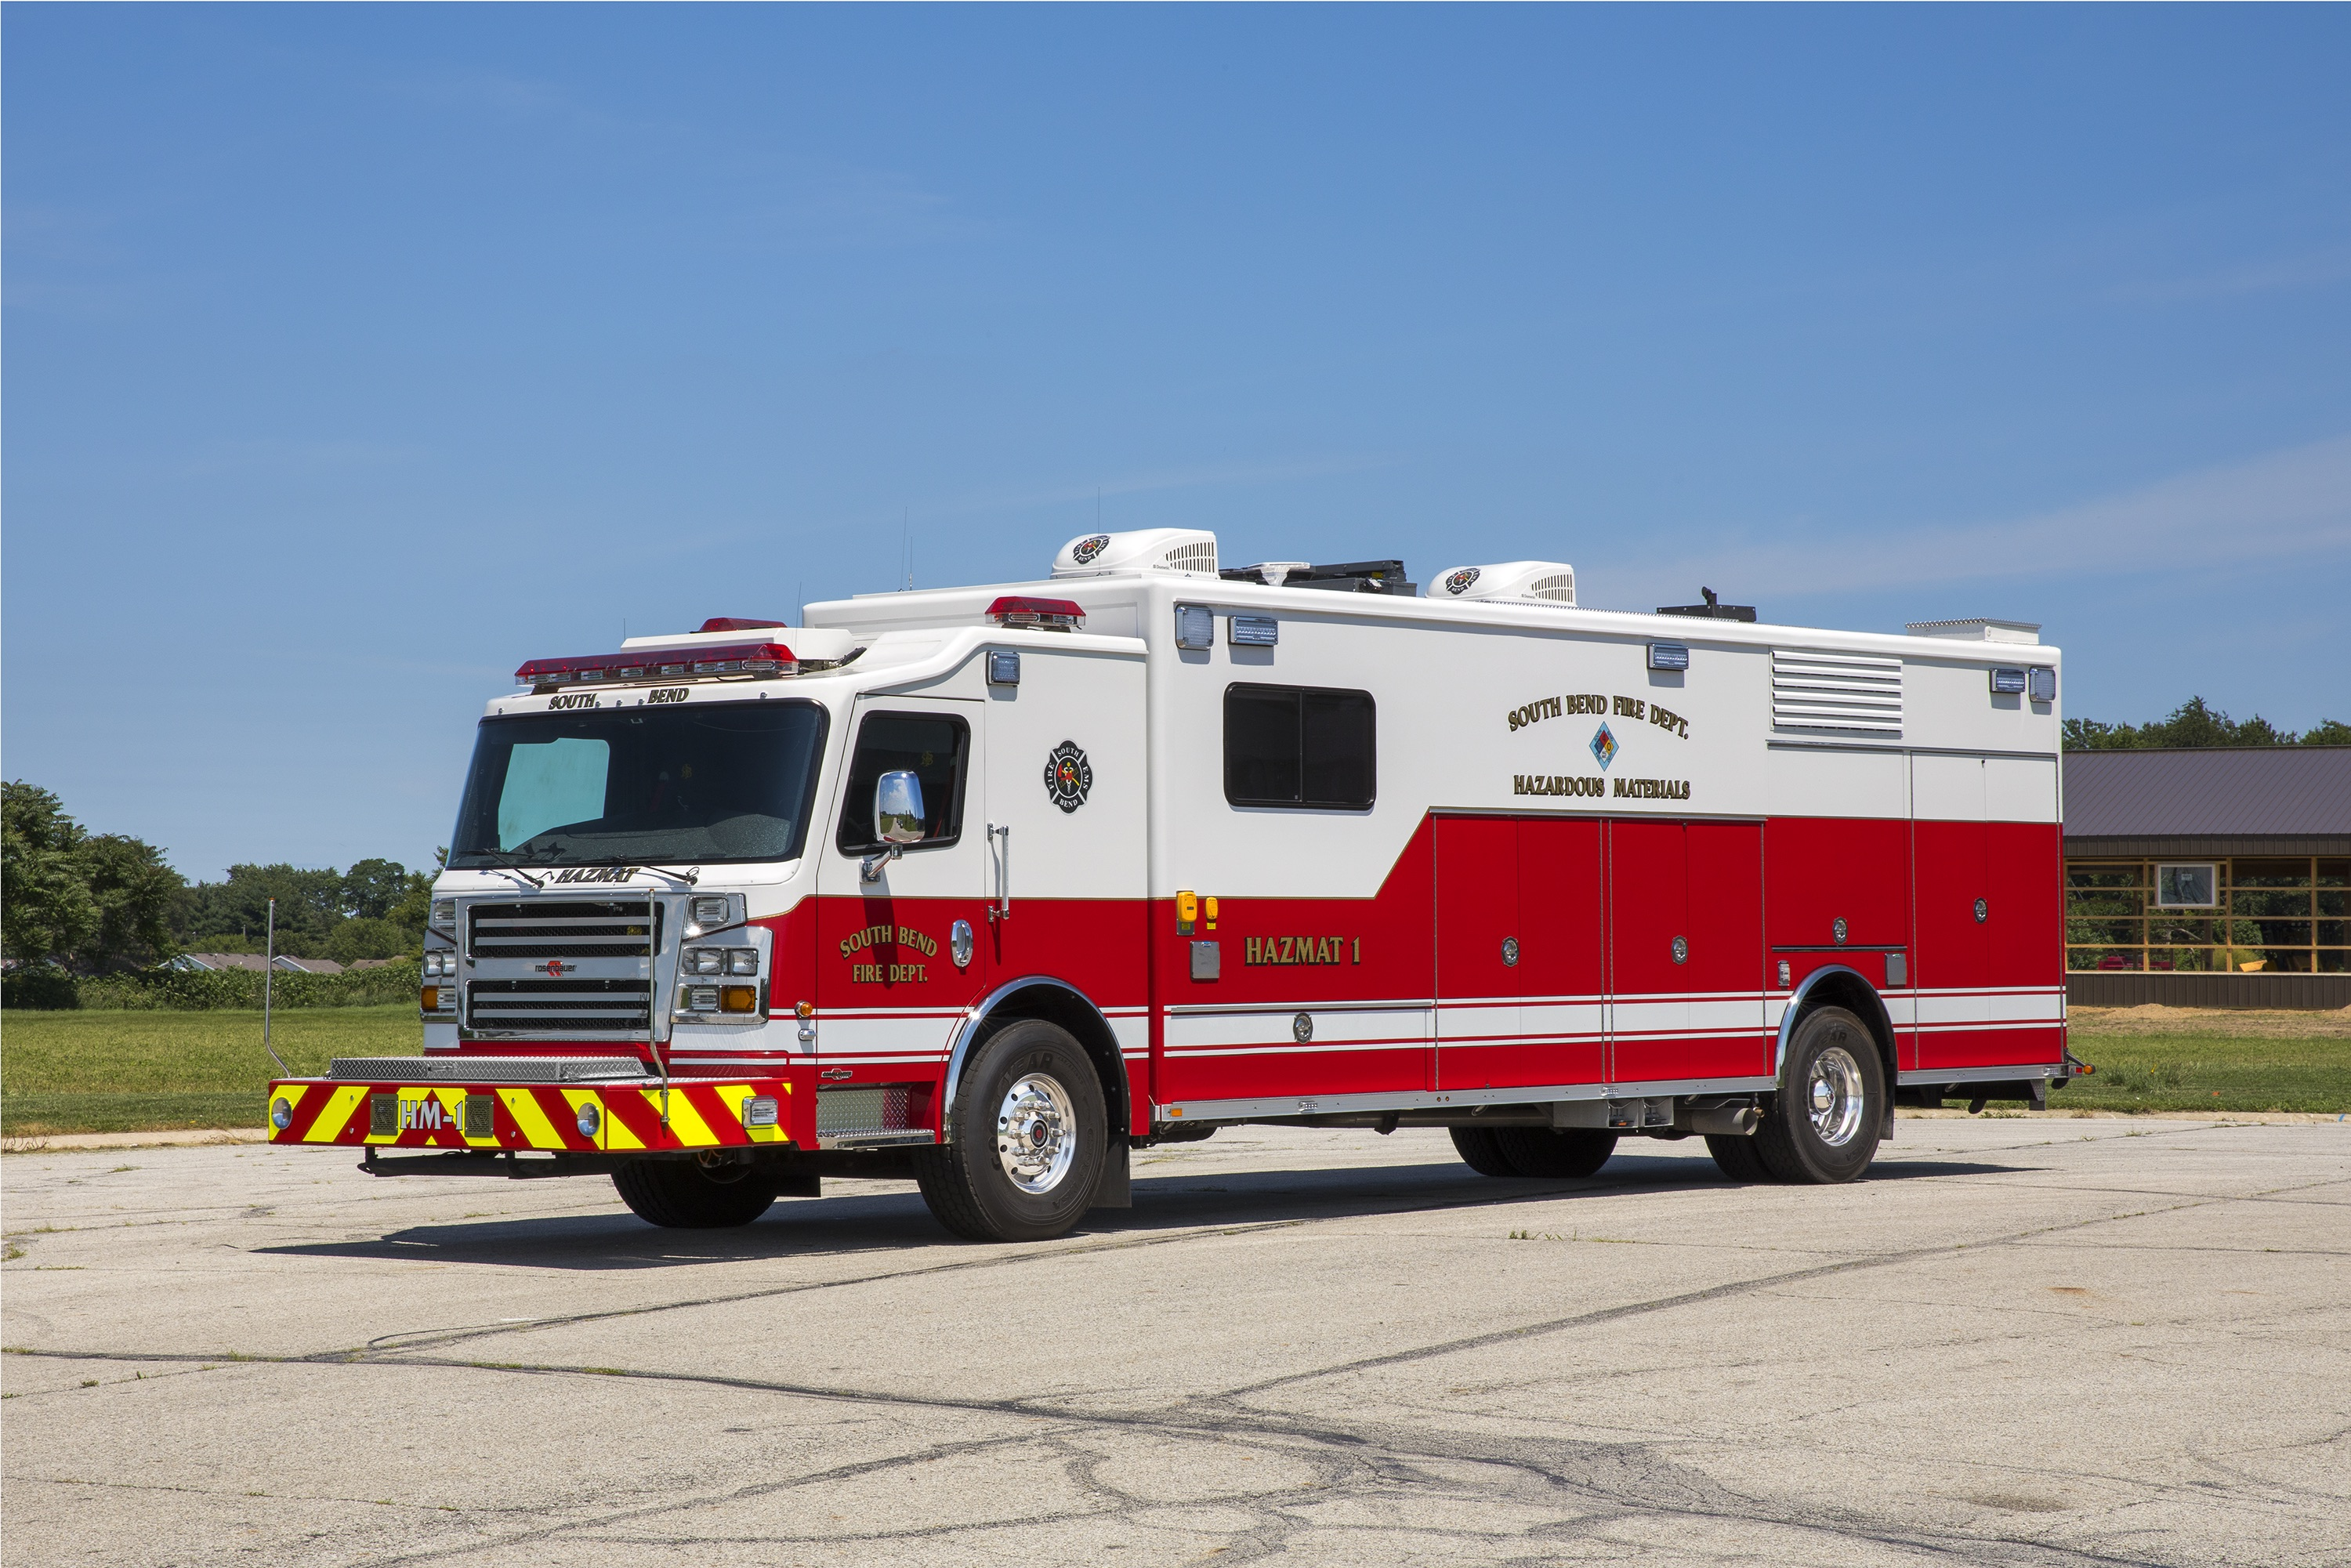 2017 Commander ER haz mat unit so 42300